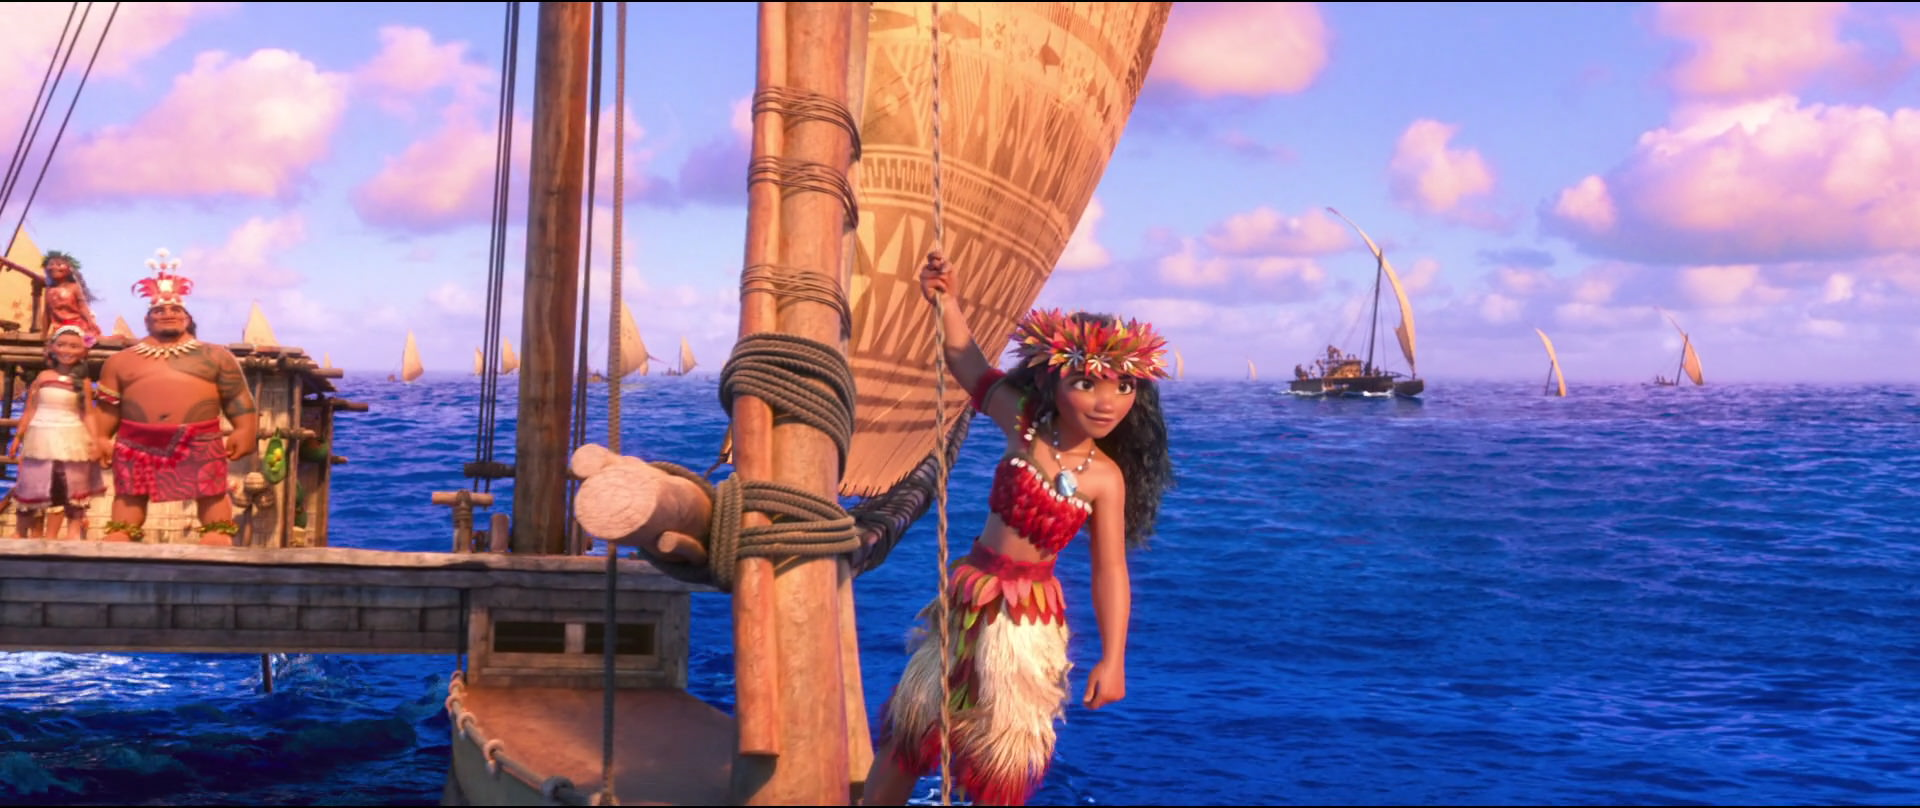 moana ending picture